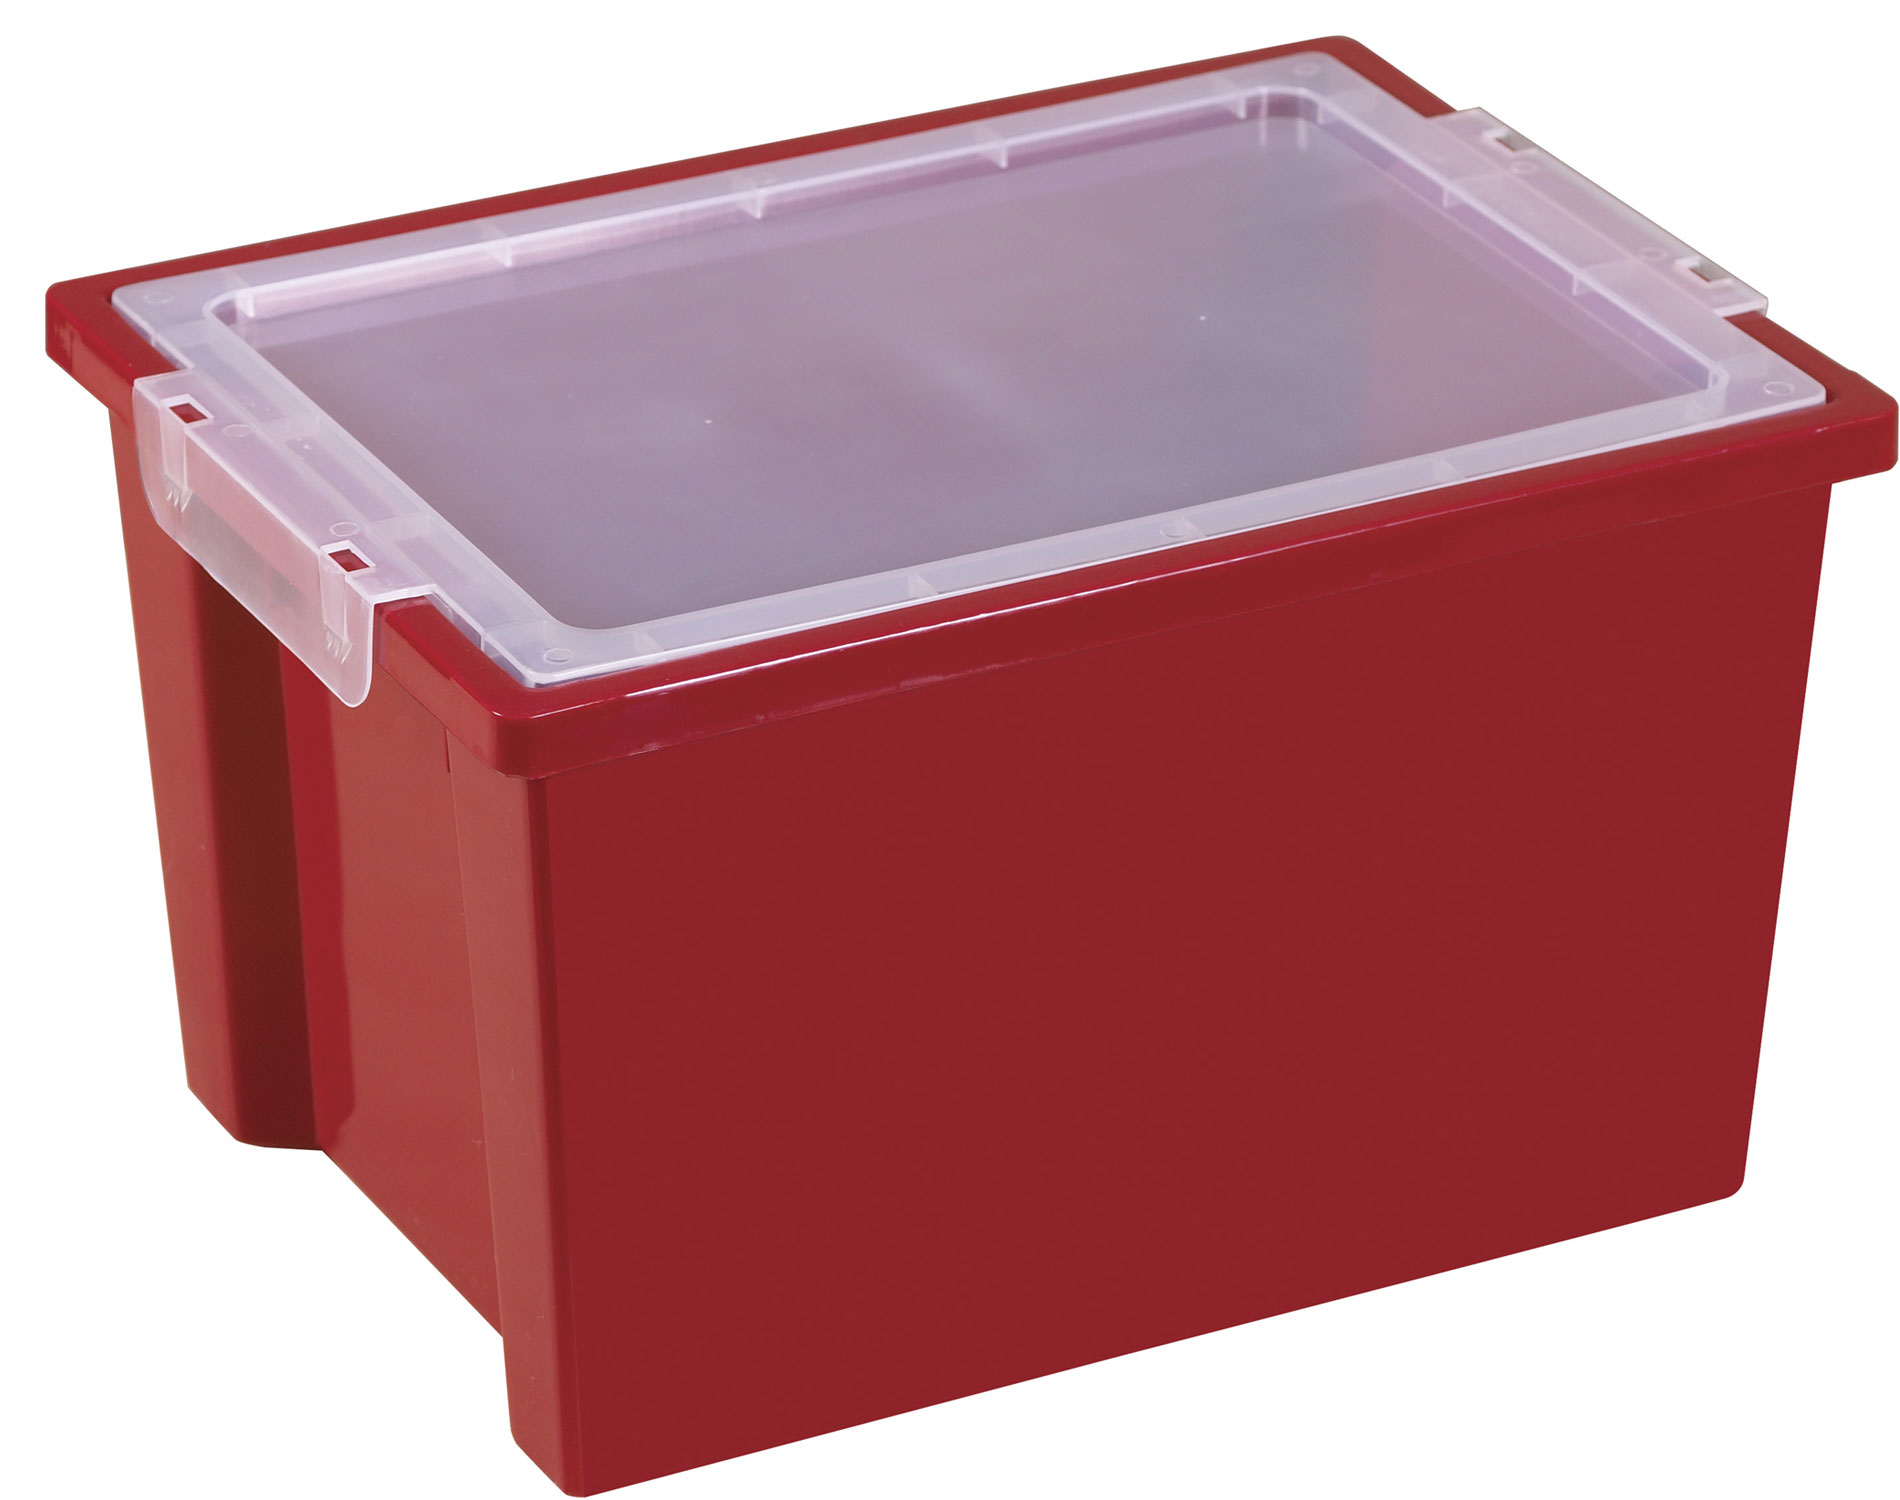 Offex Large Storage Bins with Lids Red, 4 Pack